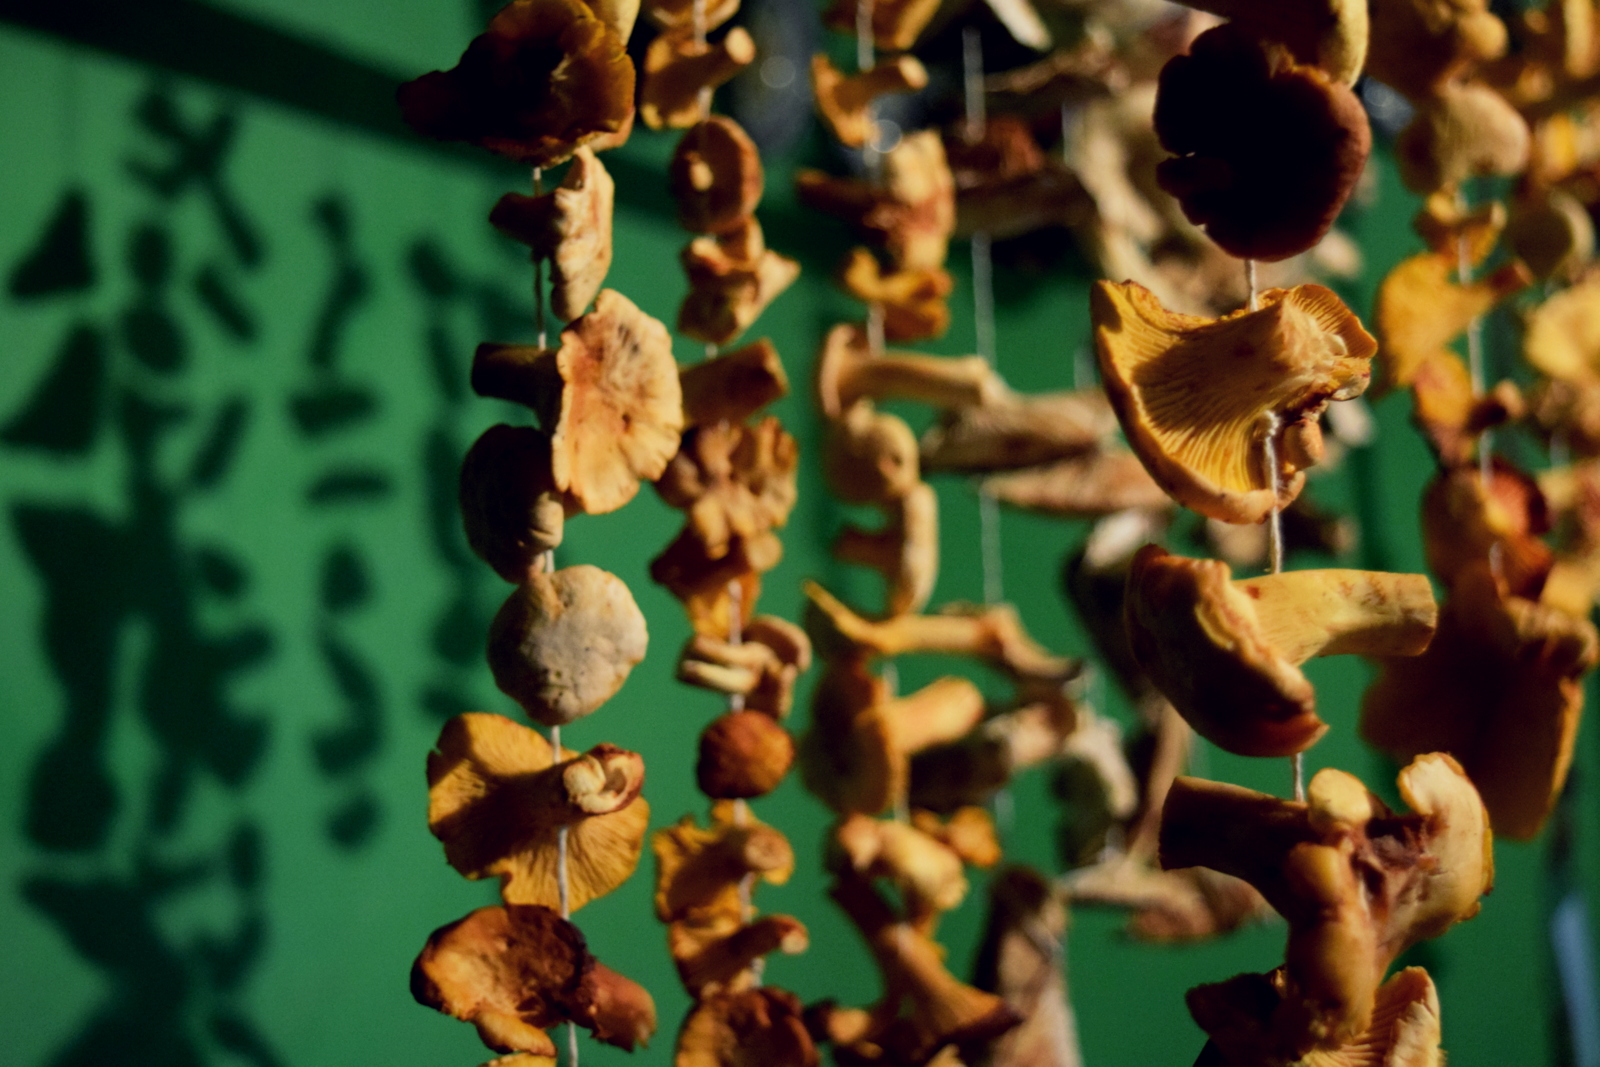 drying chanterelle mushrooms.JPG